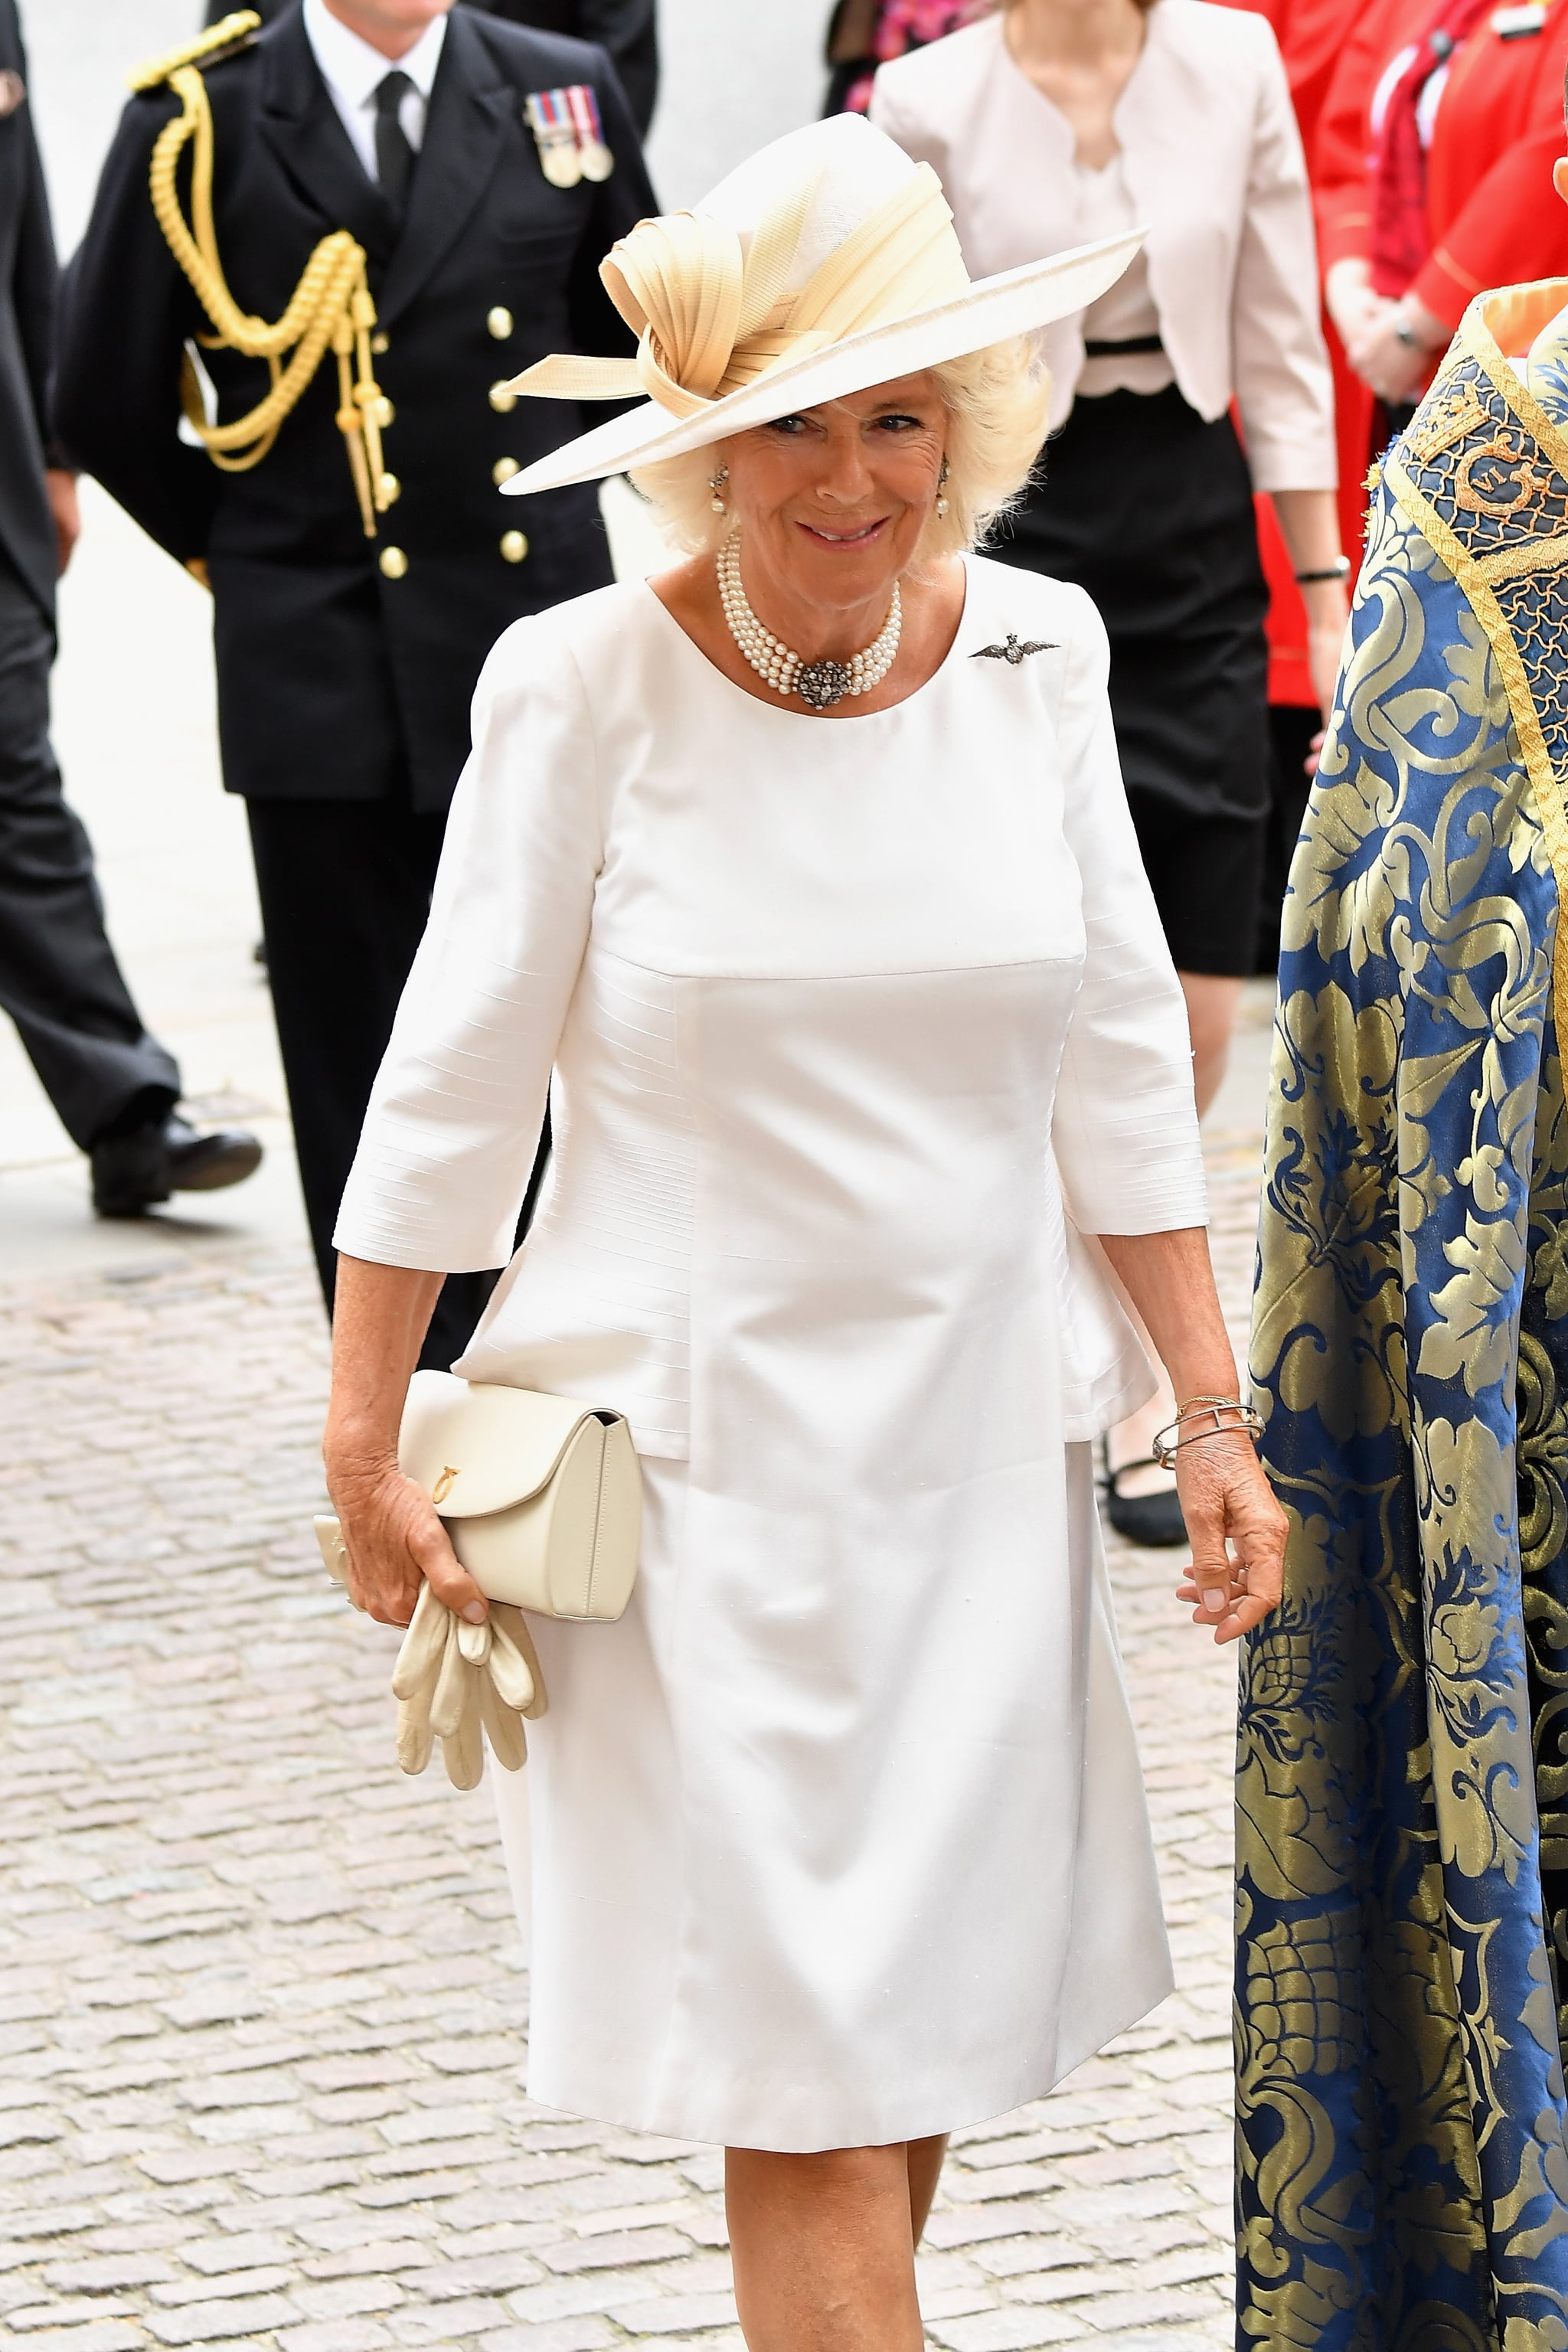 LONDON, ENGLAND - JULY 10:  Camilla, Duchess of Cornwall attends as members of the Royal Family attend events to mark the centenary of the RAF on July 10, 2018 in London, England.  (Photo by Jeff Spicer/Getty Images)